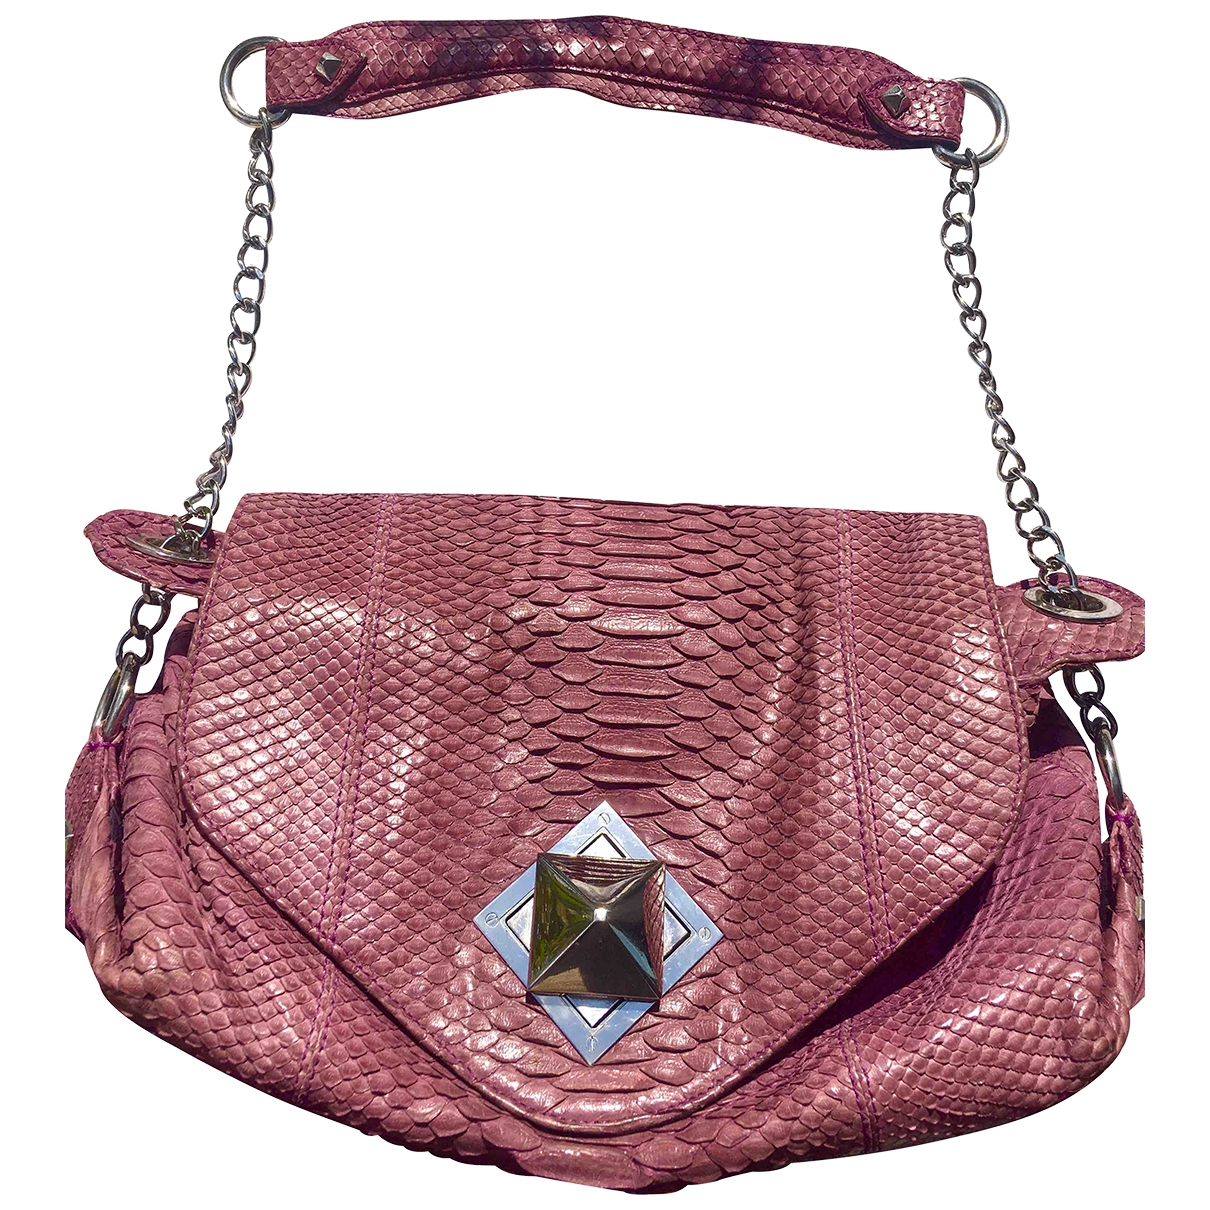 Sonia Rykiel \N Pink Python handbag for Women \N